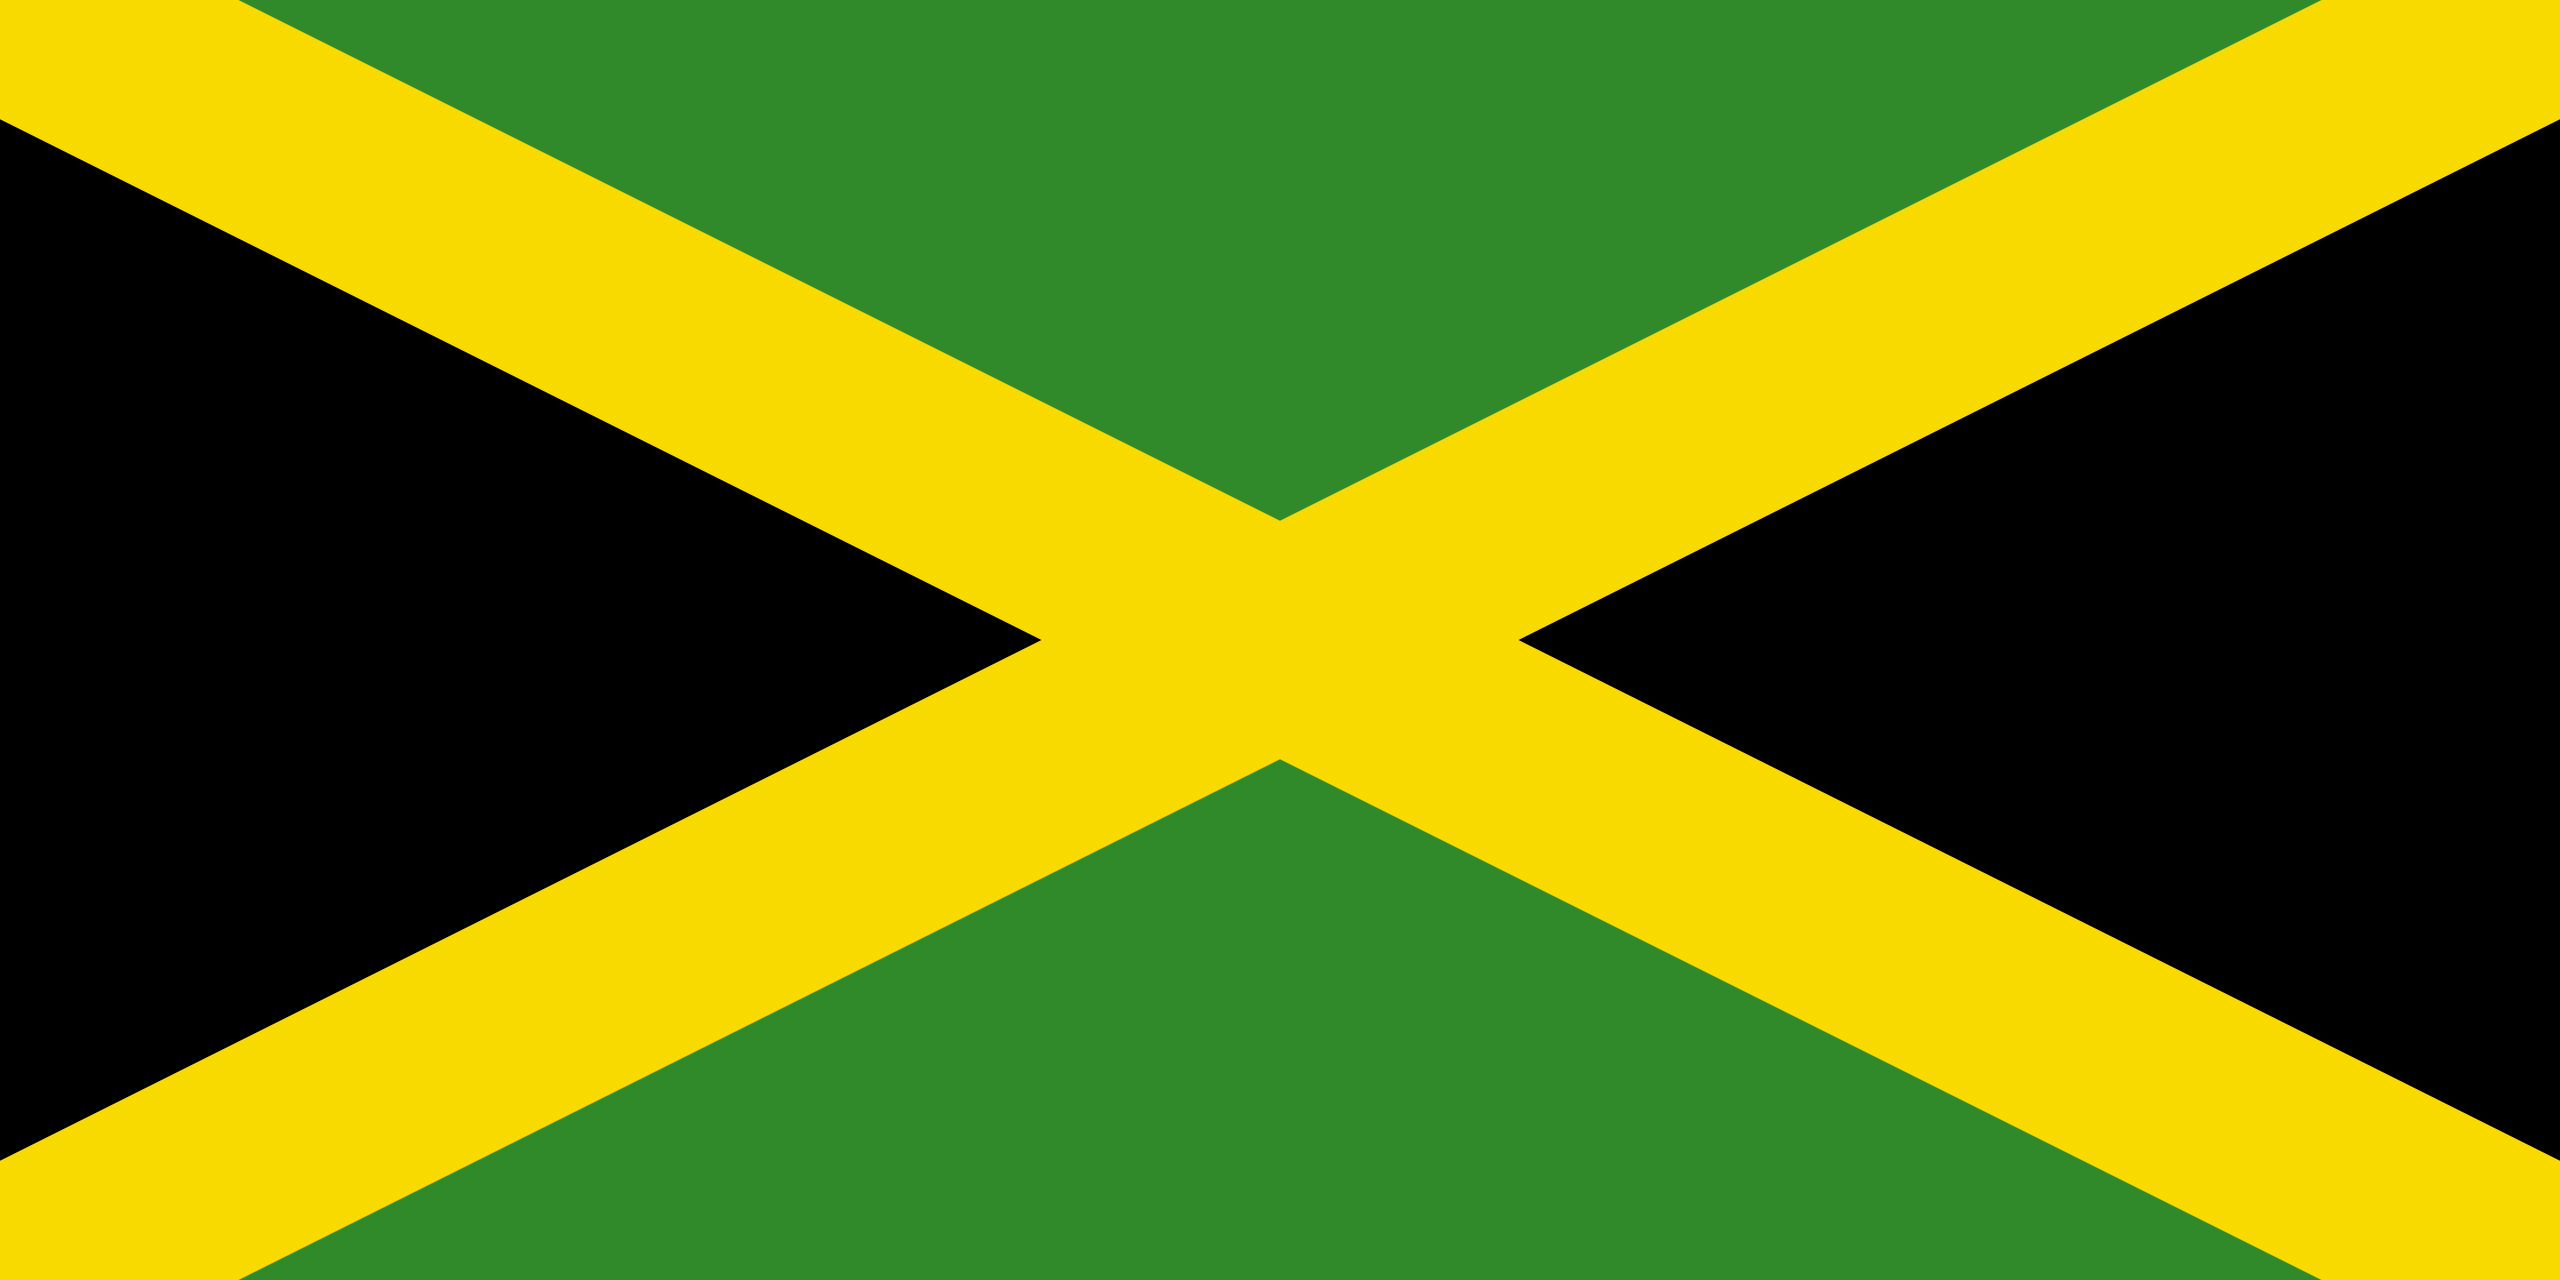 jamaica, país, emblema, insignia, σύμβολο - Wallpapers HD - Professor-falken.com